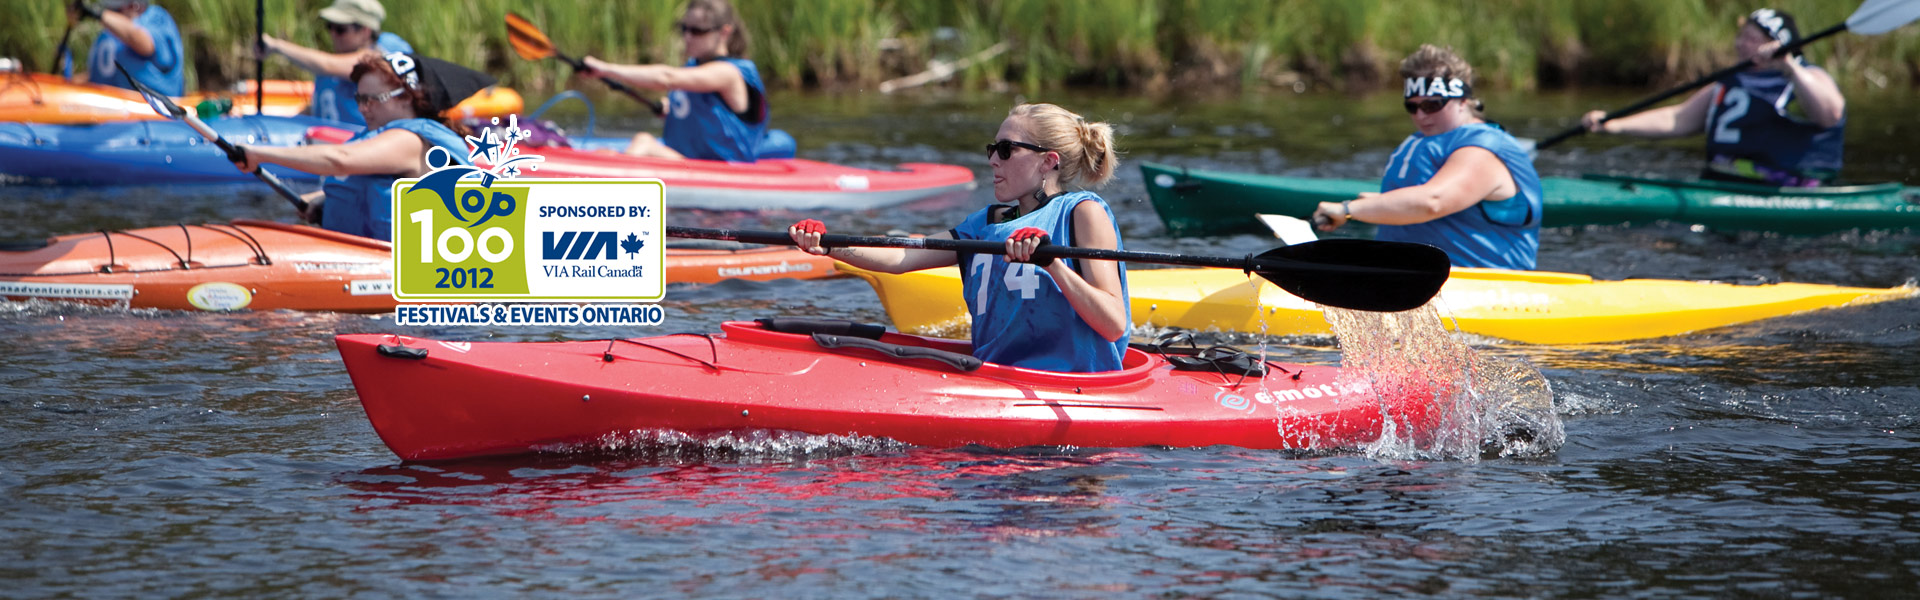 <h2>Last Week of August 2015</h2> Join us for the 7th Annual Great Canadian Kayak Challenge and Festival!